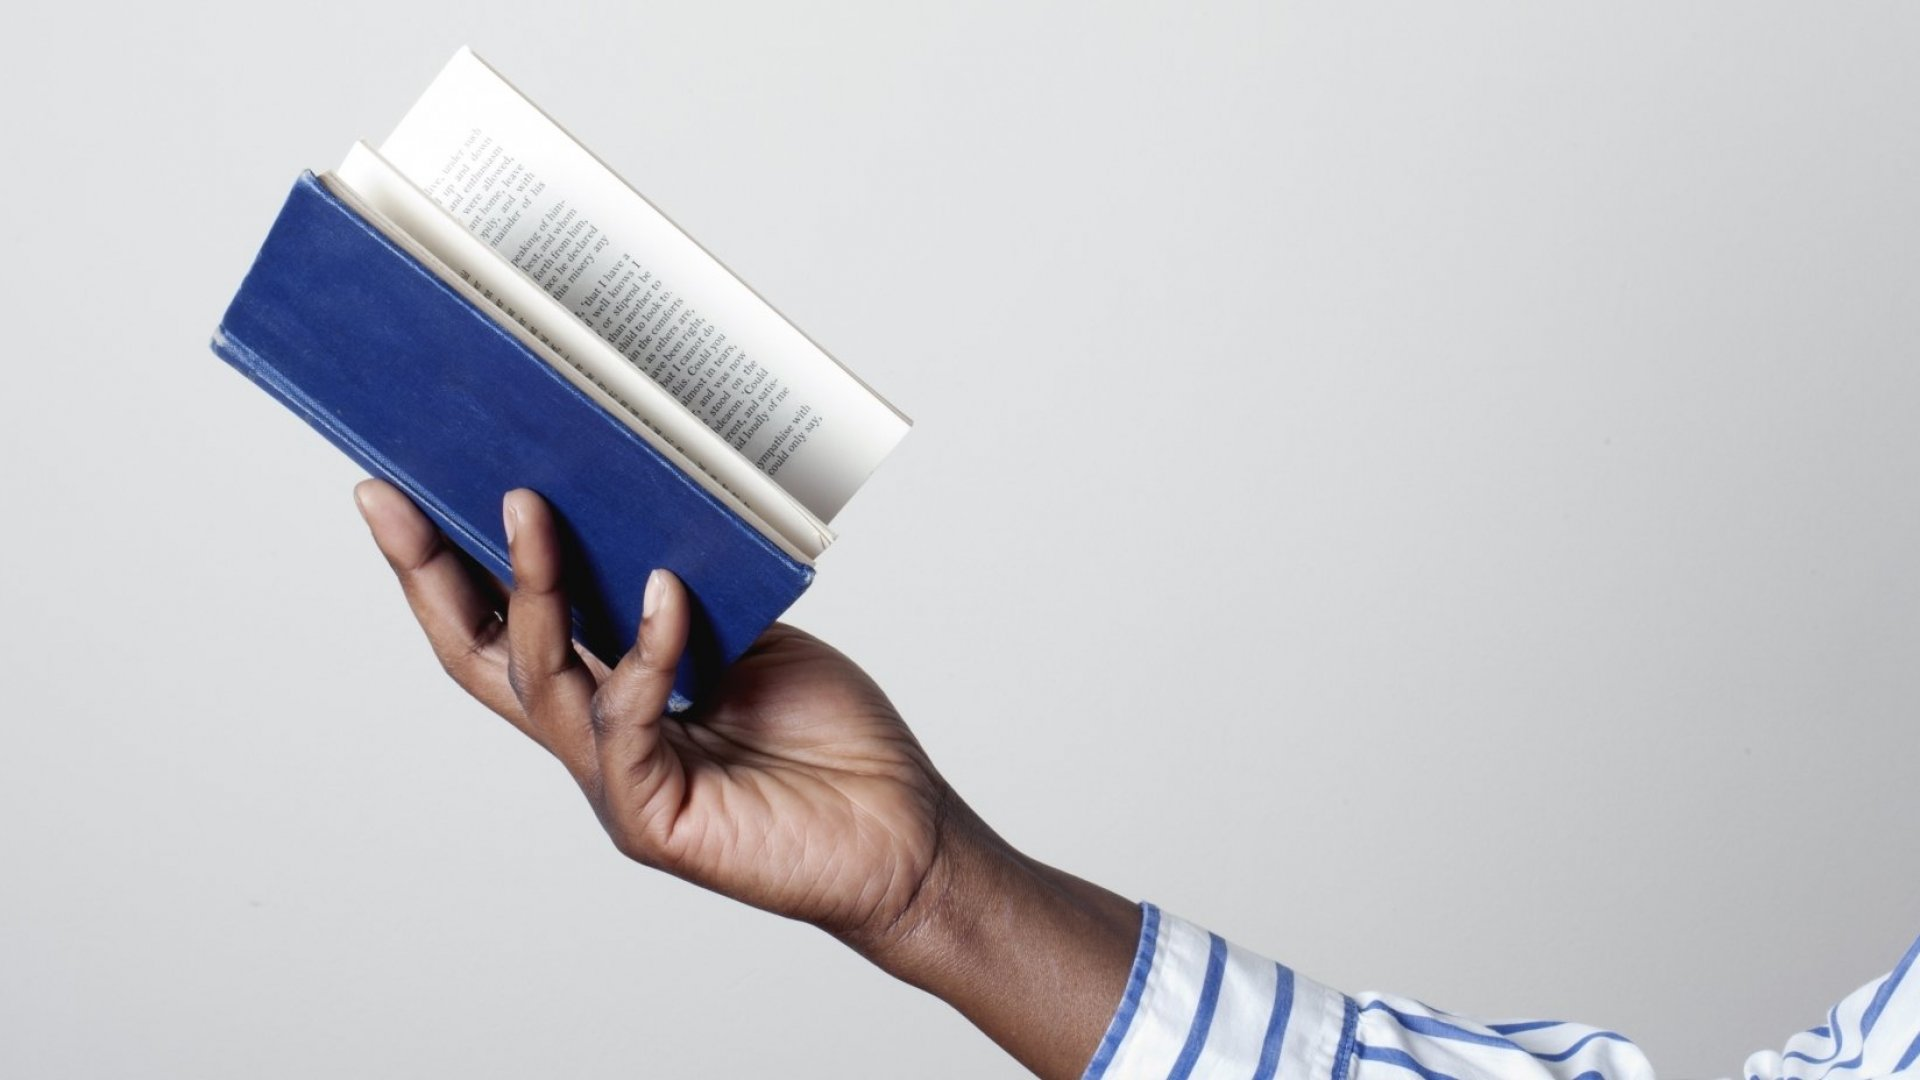 36 Books to Read If You Want to Become a Billionaire